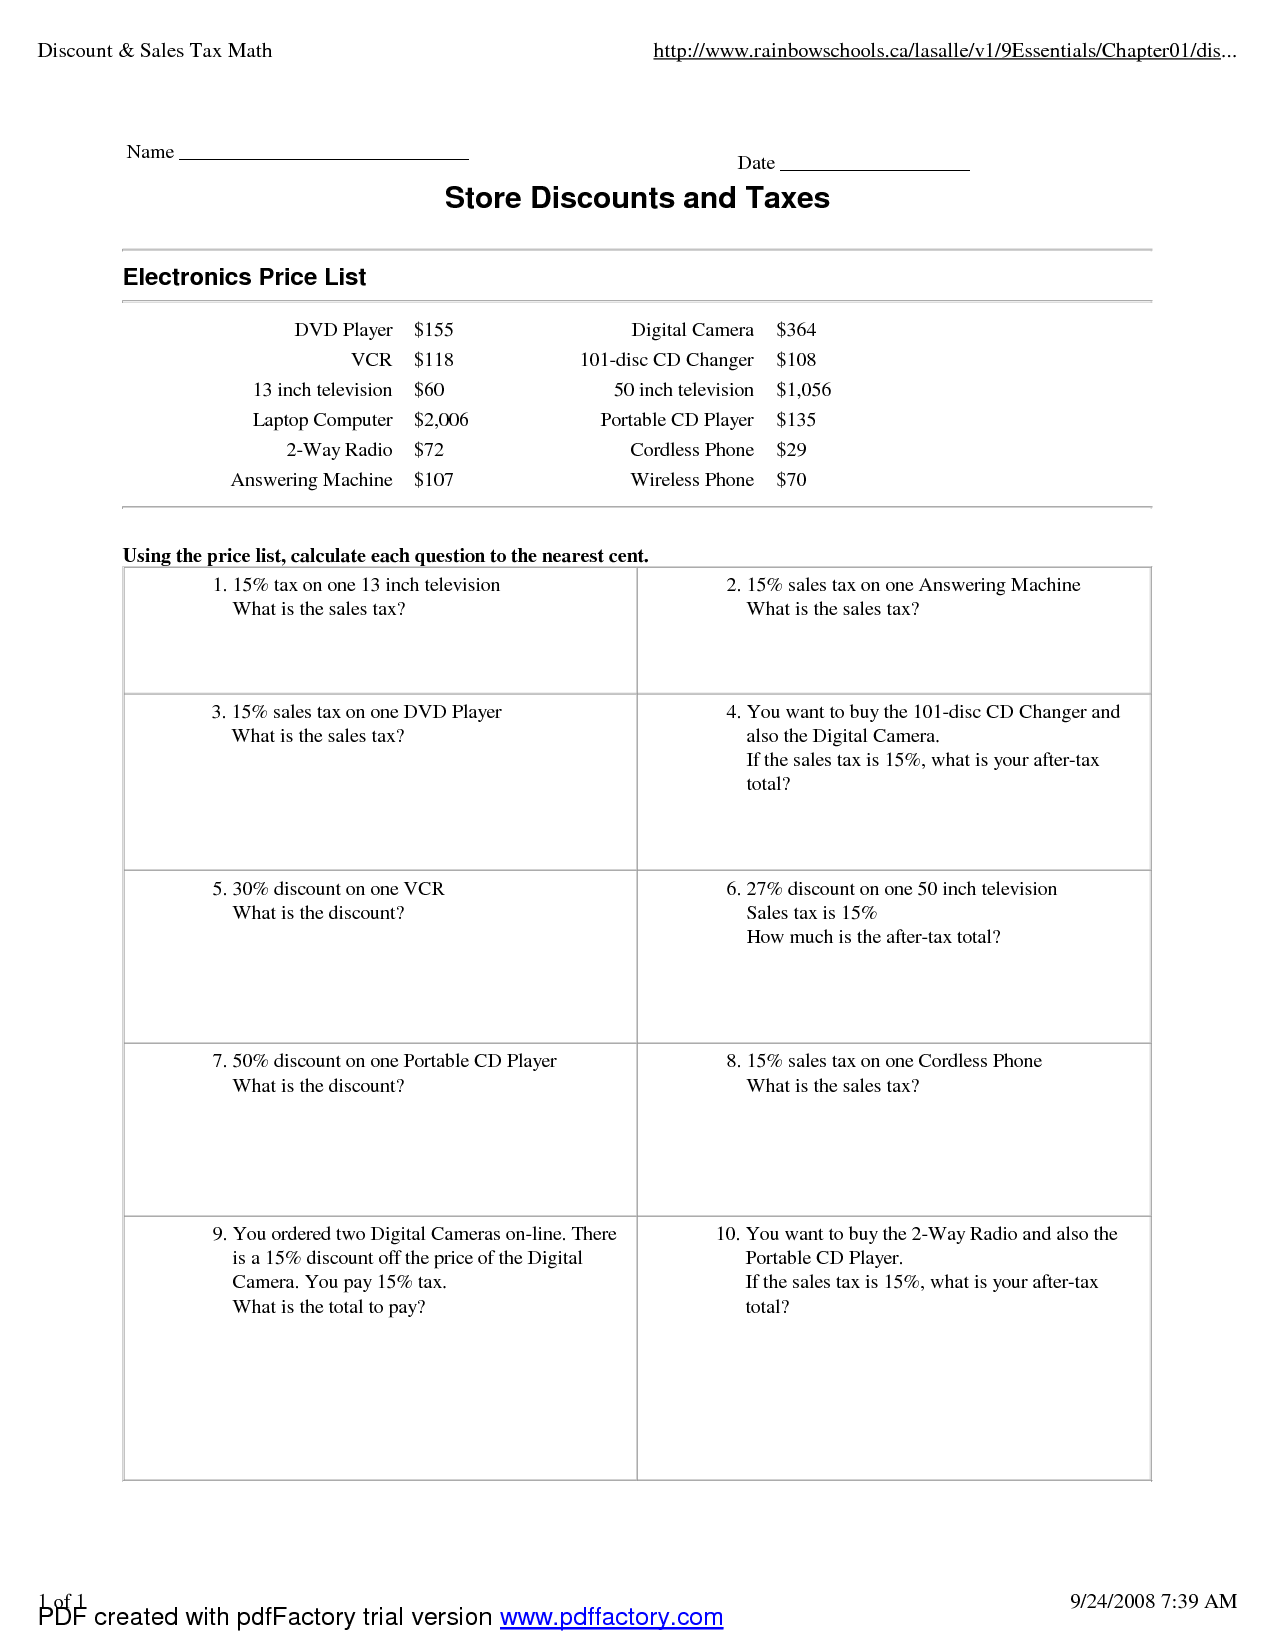 Problems with Tax and Discounts - 4 Worksheets